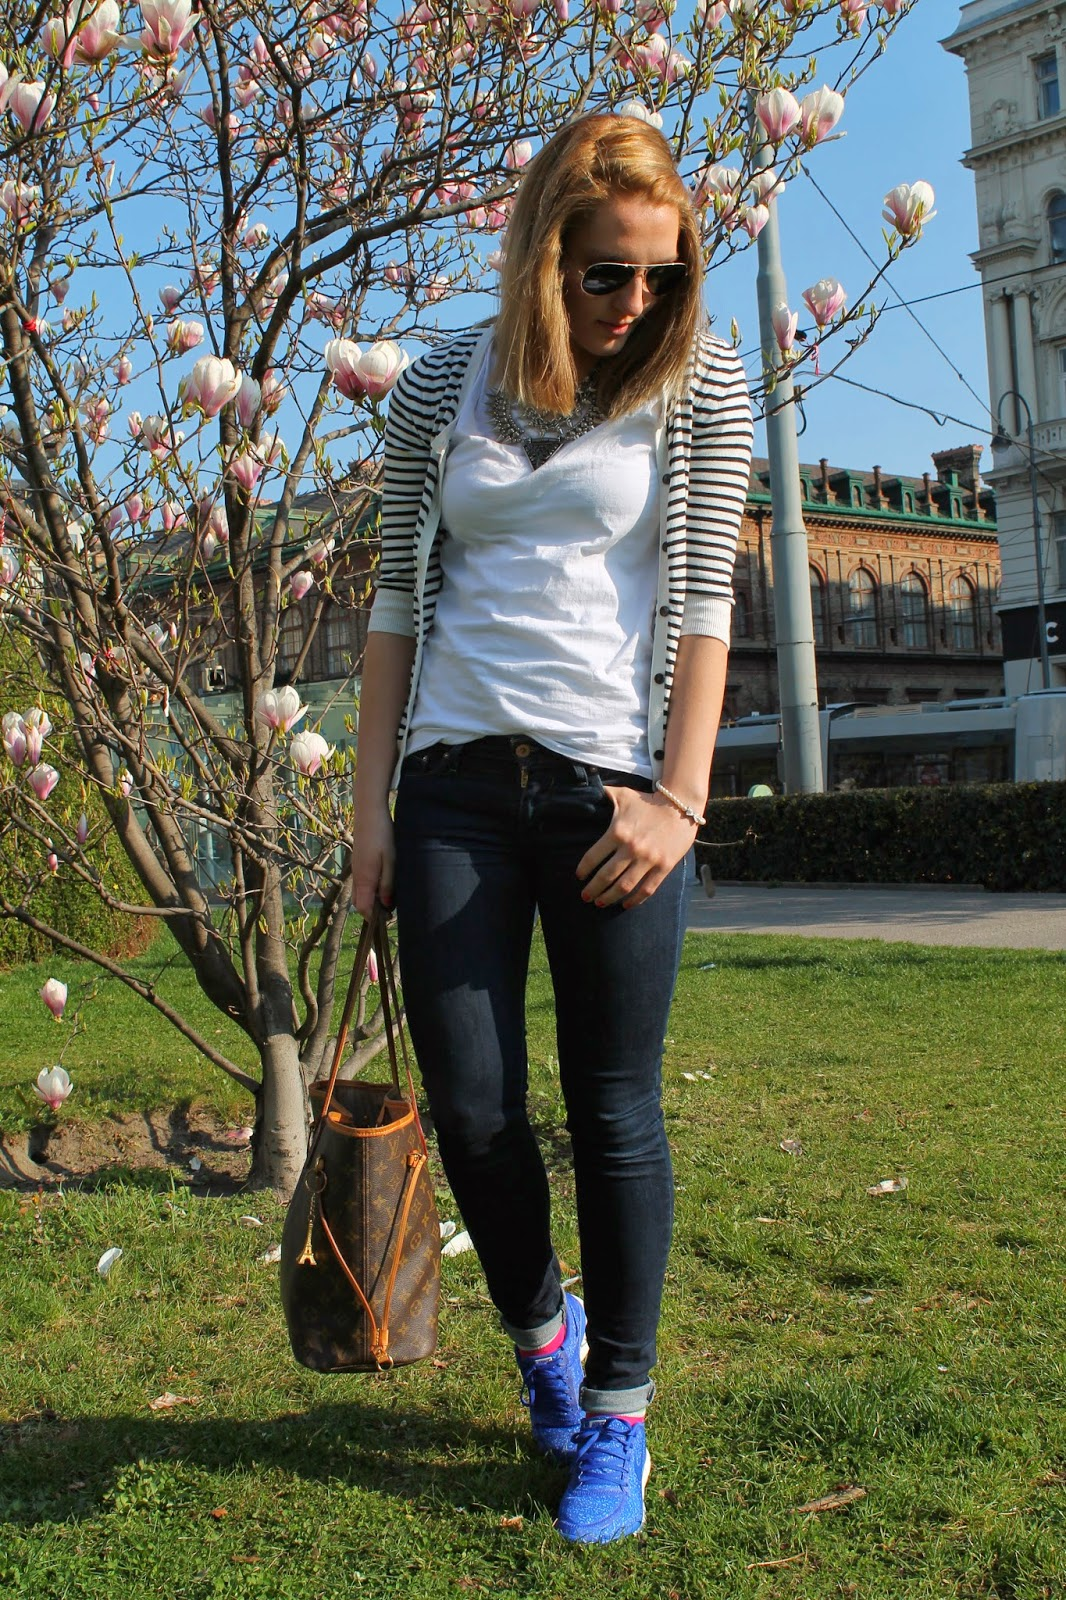 Fashionblogger Austria Österreich Kärnten Carinthia Klagenfurt Wien Vienna Viennese Blogger Nike Sneaker 5.0 Cardigan Striped Louis Vuitton Neverfull Zara Statement Necklace Levis Jeans Svetlana Lavender Star Look Streetstyle Fashionista Spring Look Spring Collection 2014